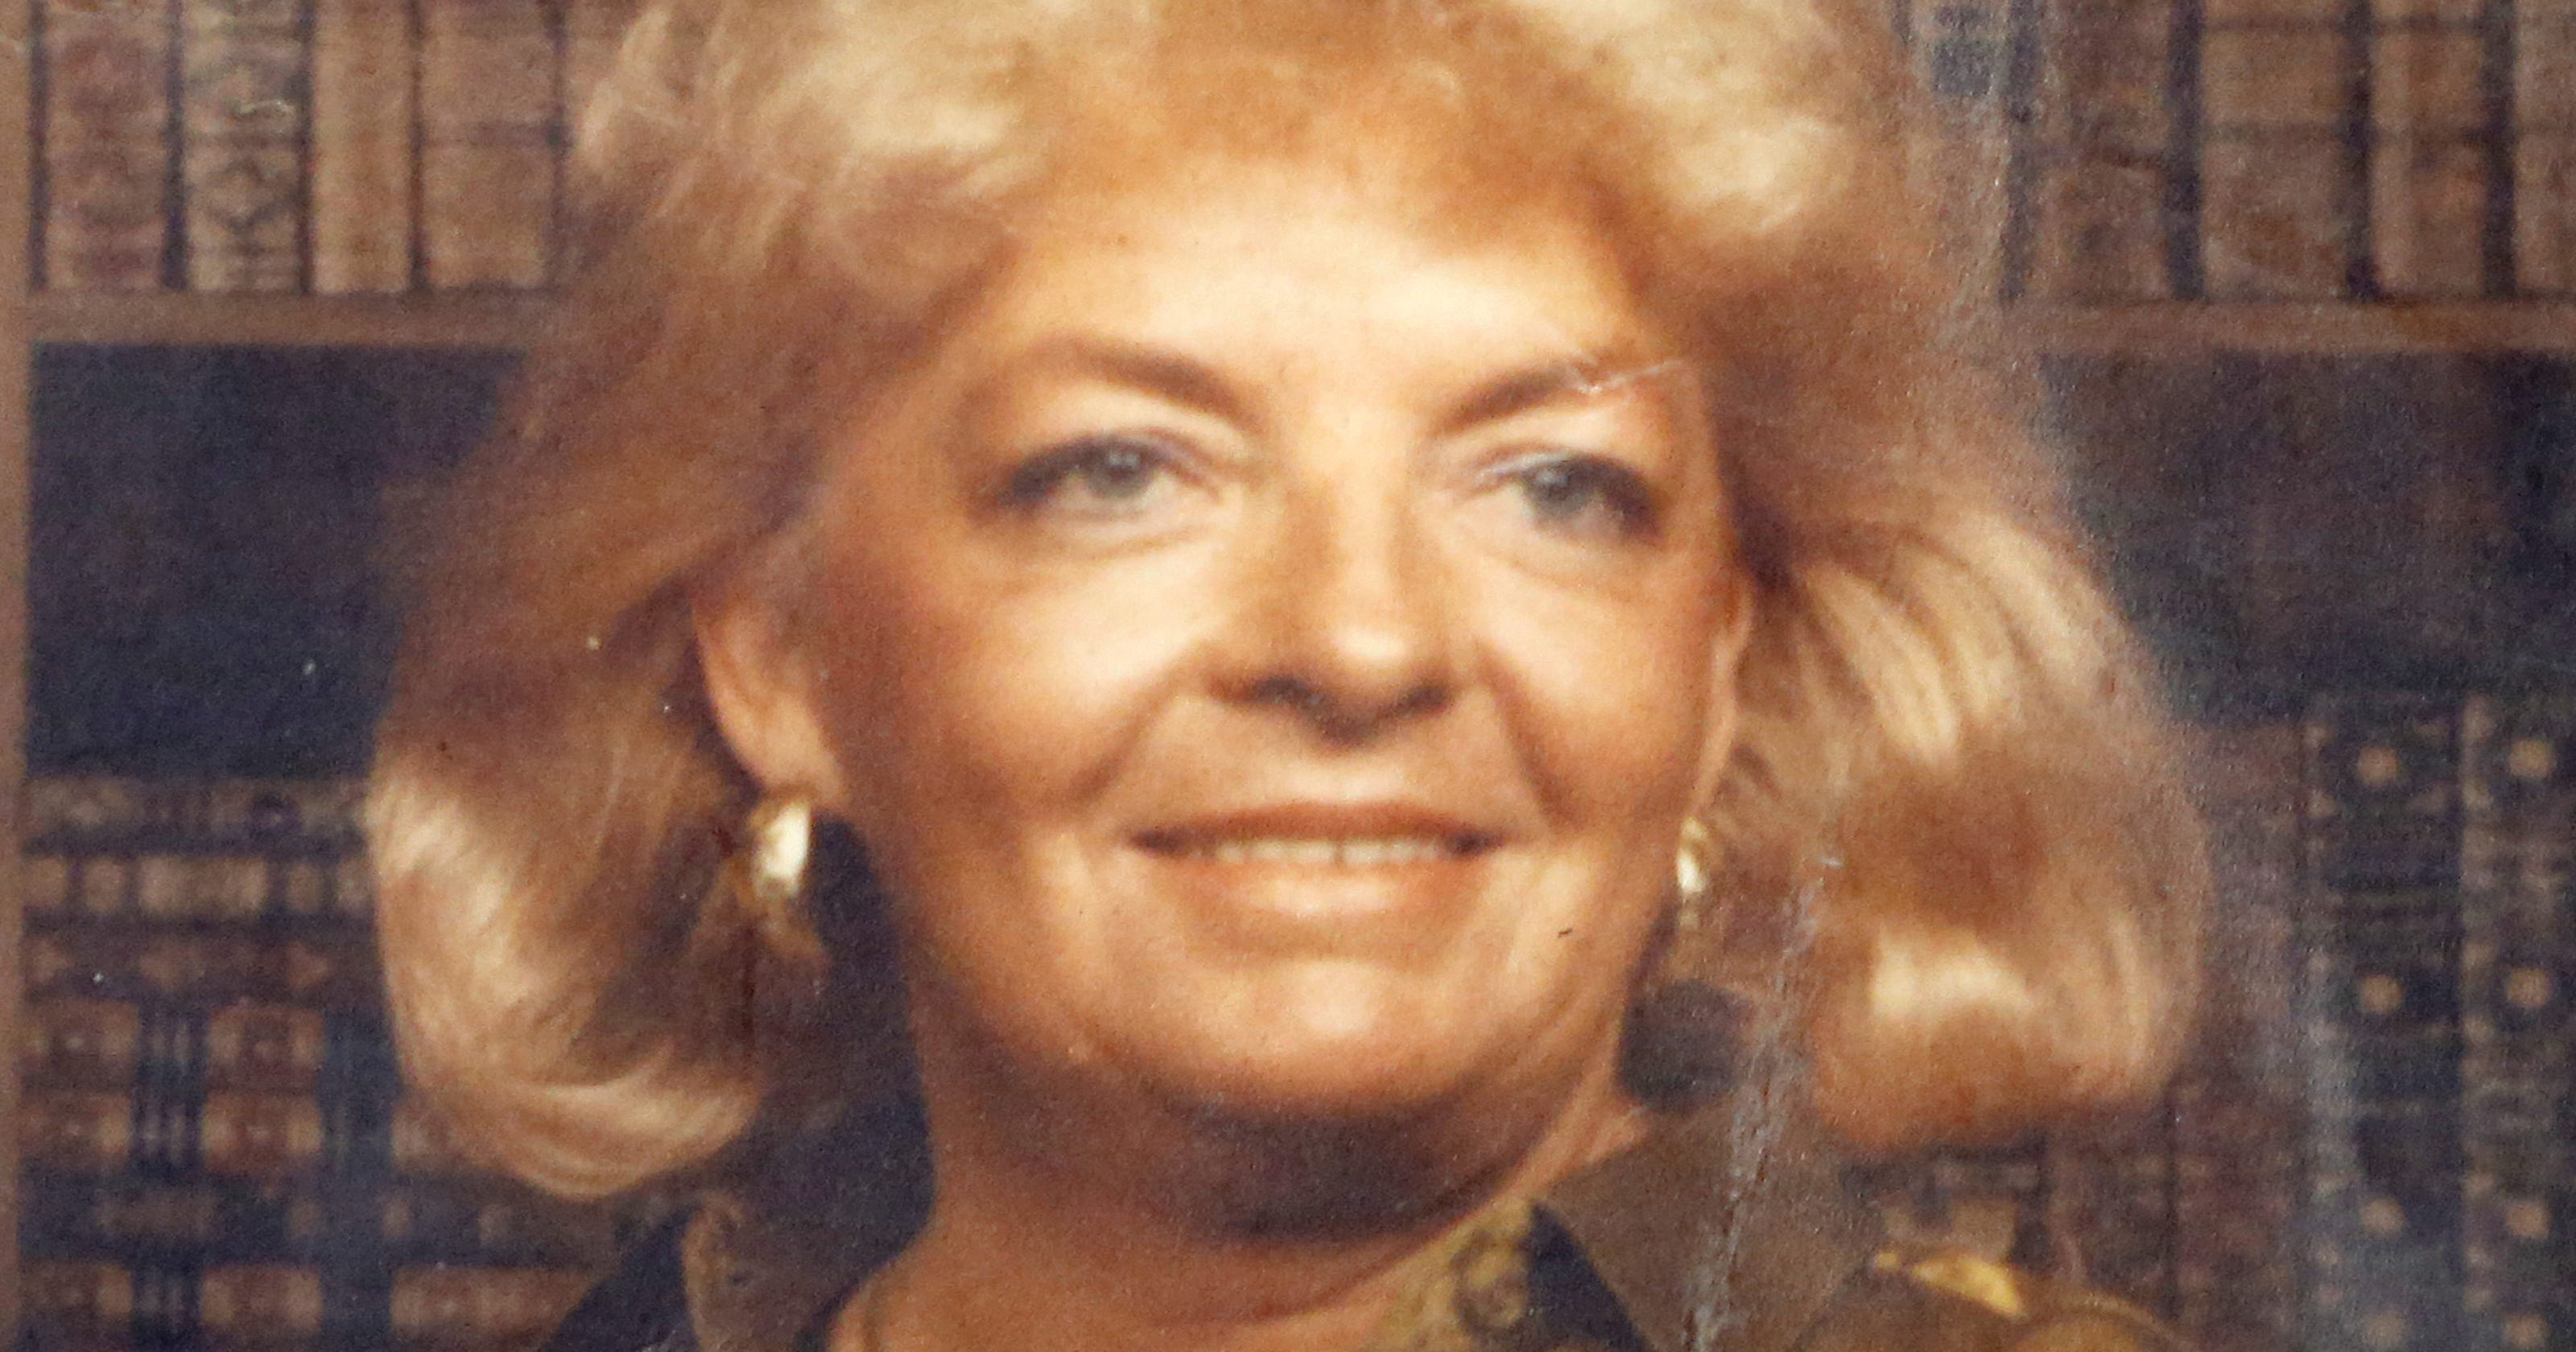 Accused: The unsolved murder of Retha Welch